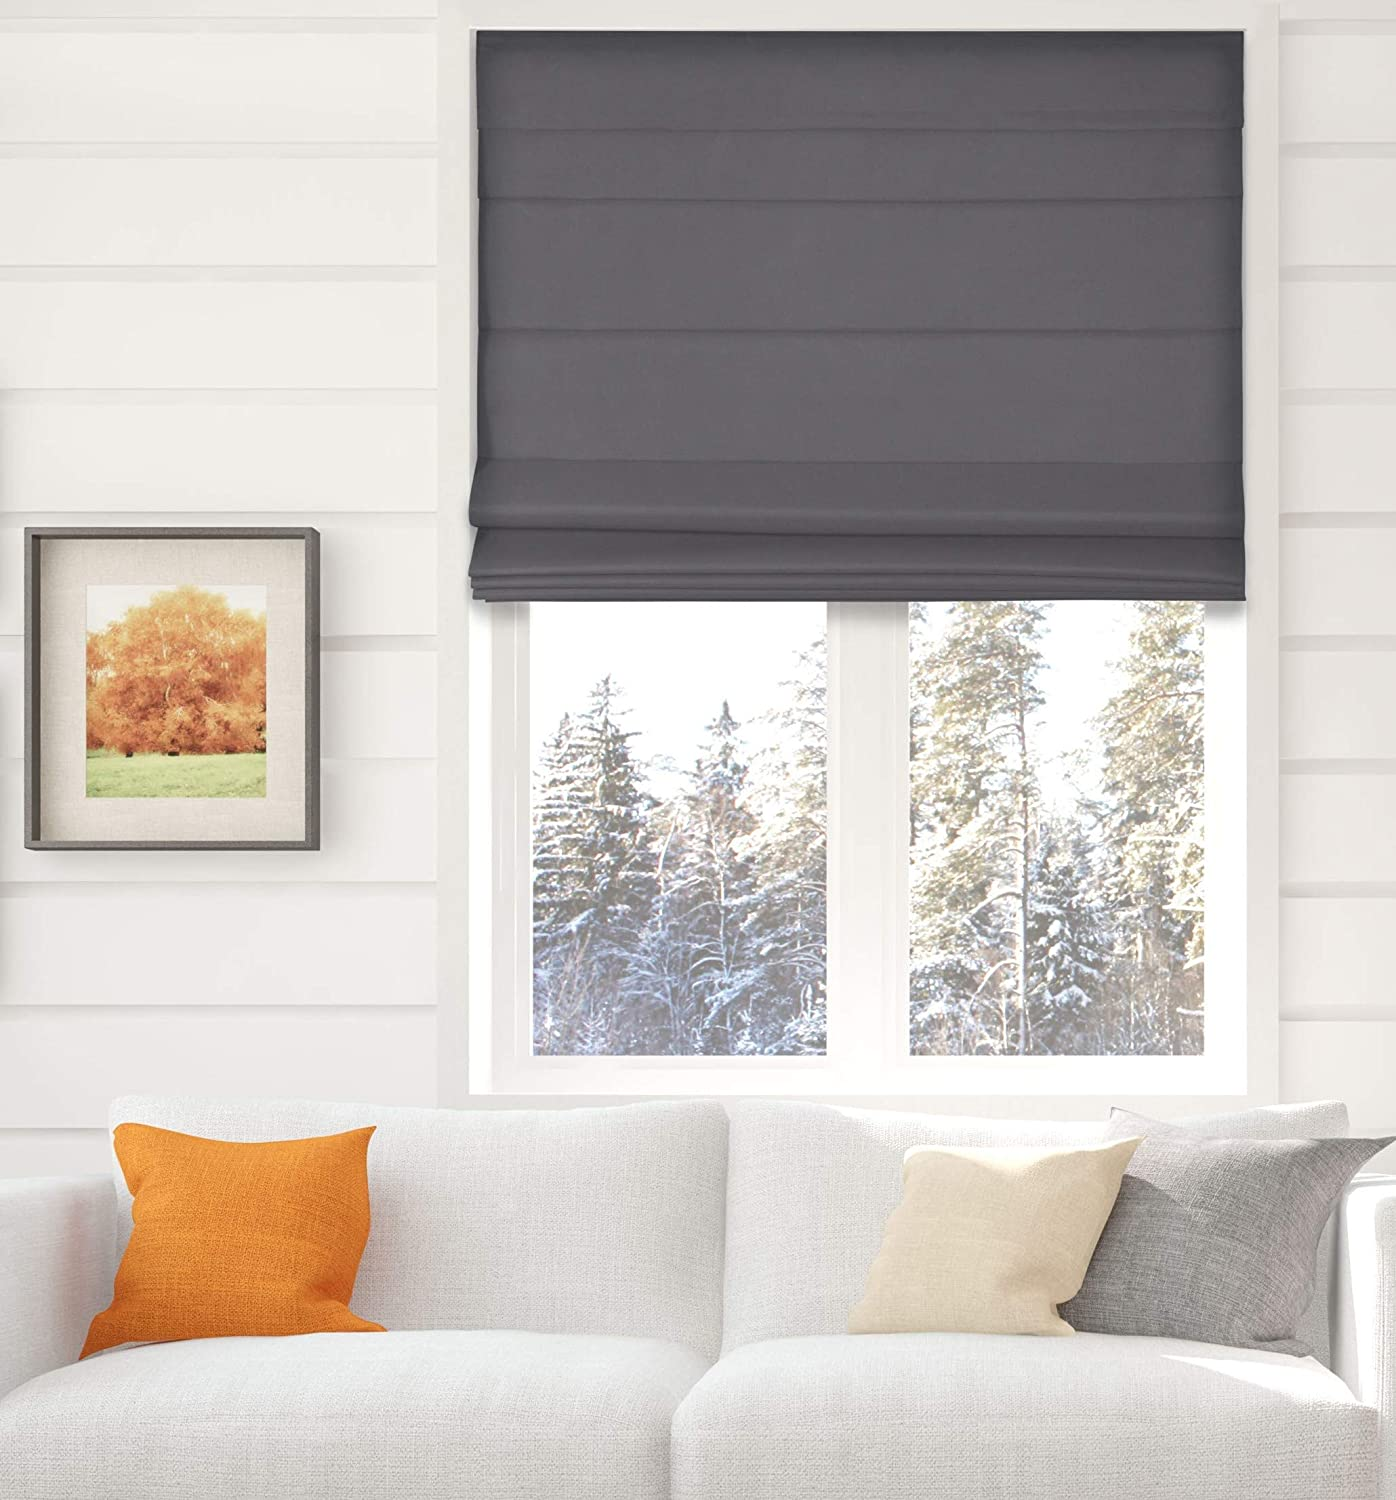 Amazon Com Arlo Blinds Thermal Room Darkening Fabric Roman Shades Color Graphite Size 22 W X 60 H Cordless Lift Window Blinds Home Kitchen